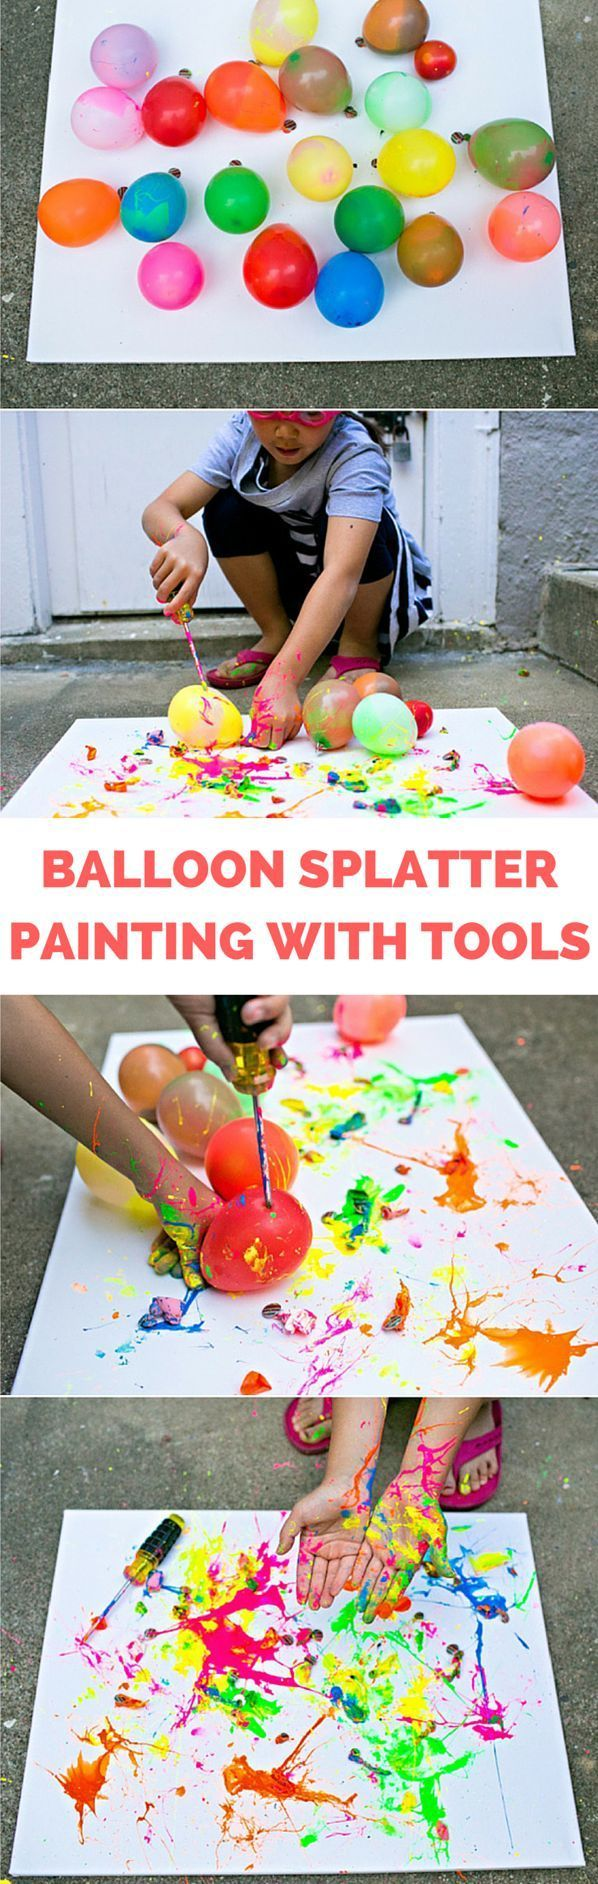 Balloon Splatter Painting with Tools Fun summer outdoor art project for kid that results in